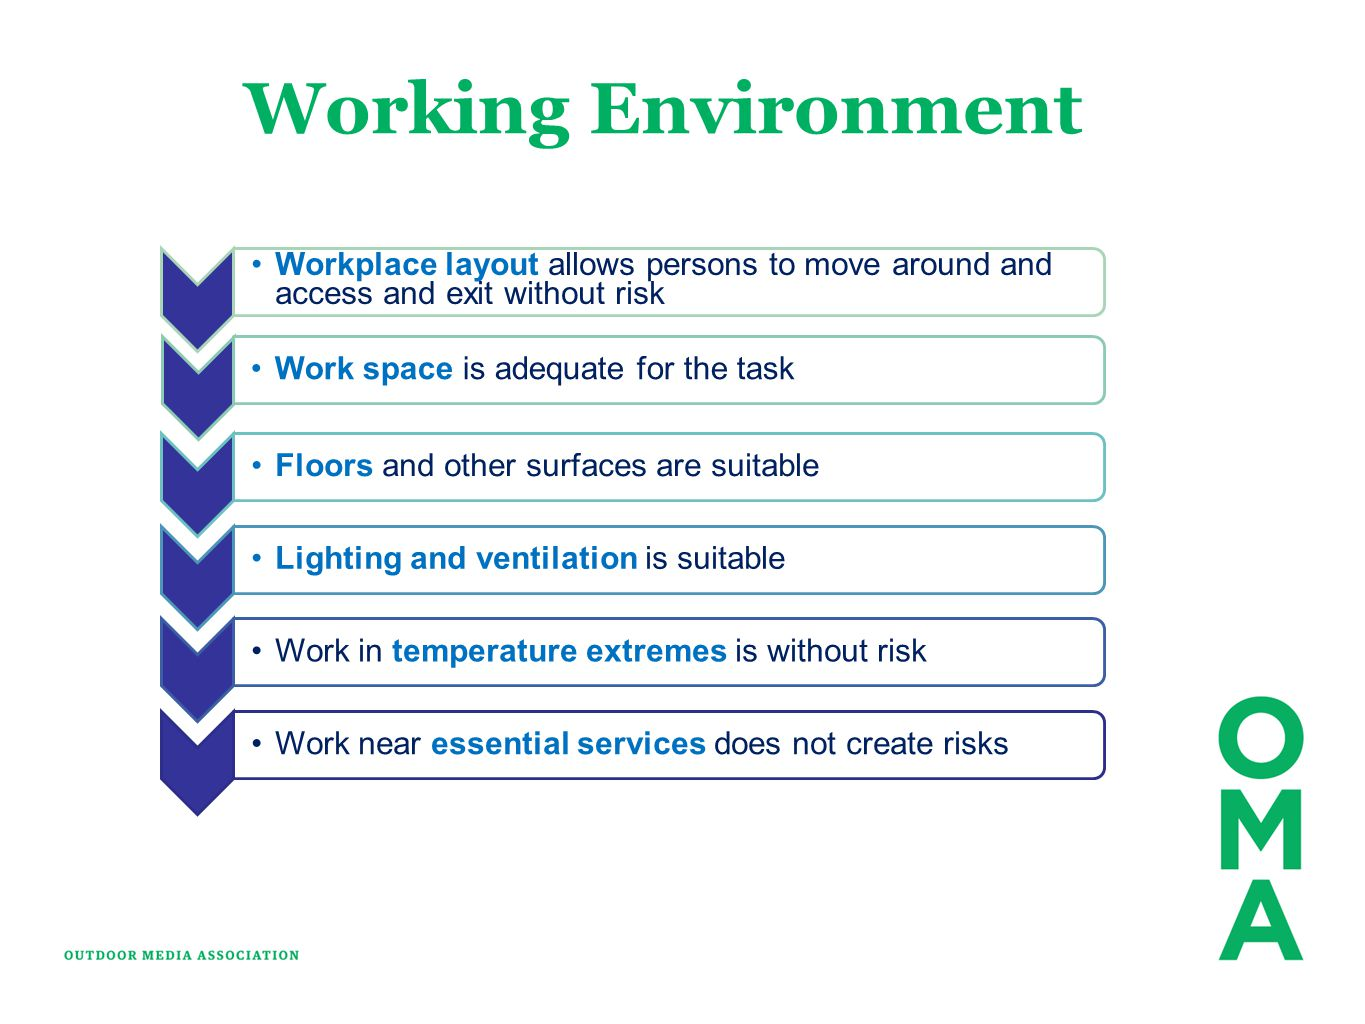 Working Environment Workplace layout allows persons to move around and access and exit without risk.